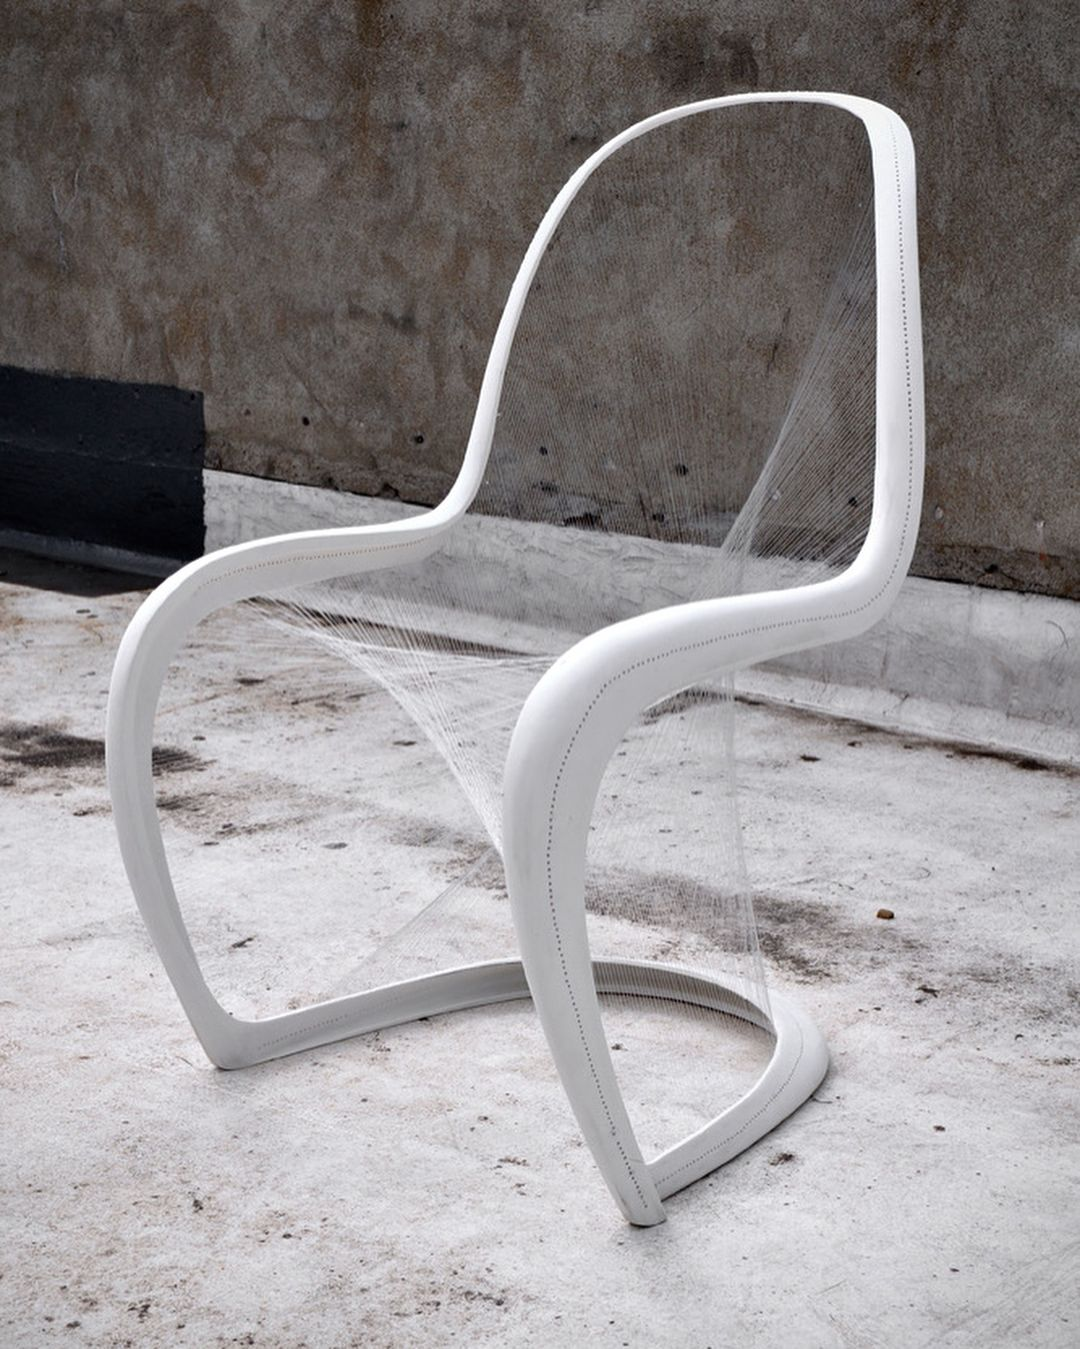 inspired by panton chair design by jump studio d signersin rh pinterest com